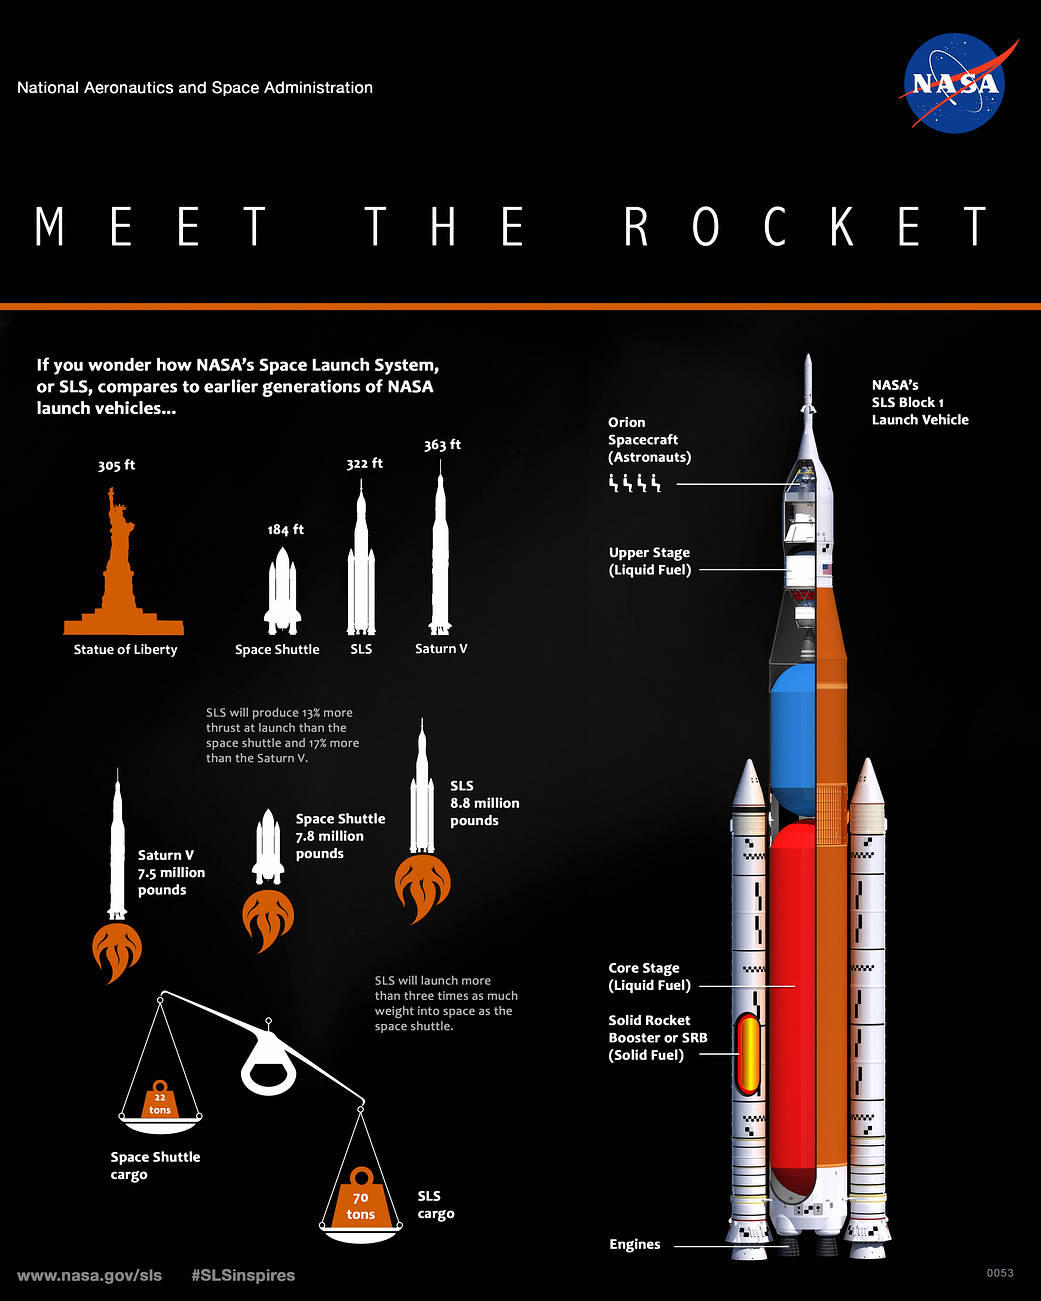 Infographic describing NASA's next big rocket, the Space Launch System.